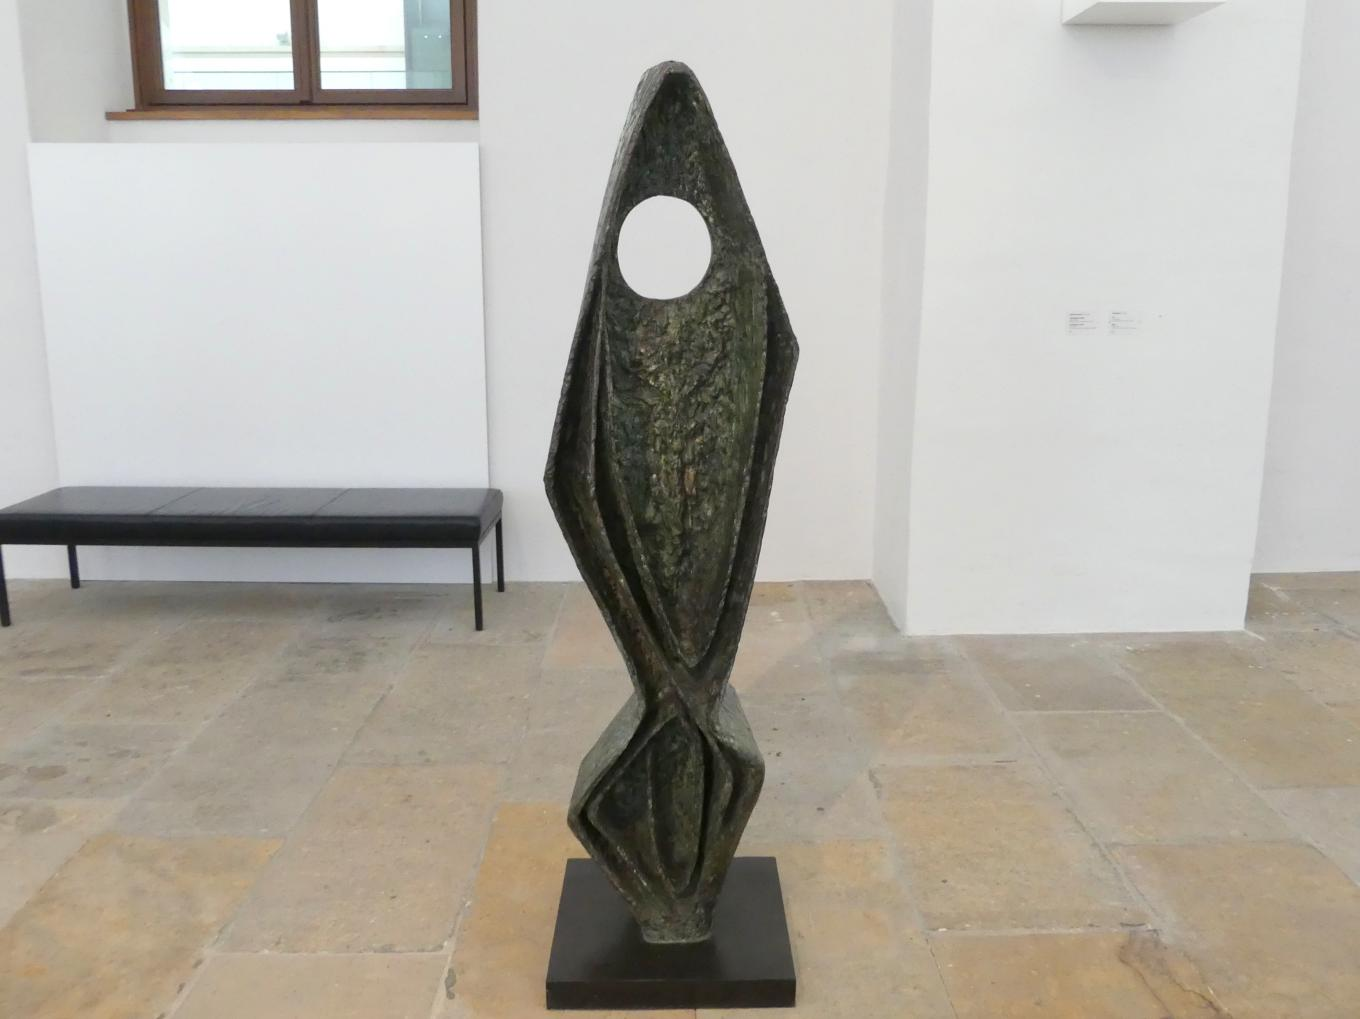 Barbara Hepworth: Ascending Form: Gloria, 1958